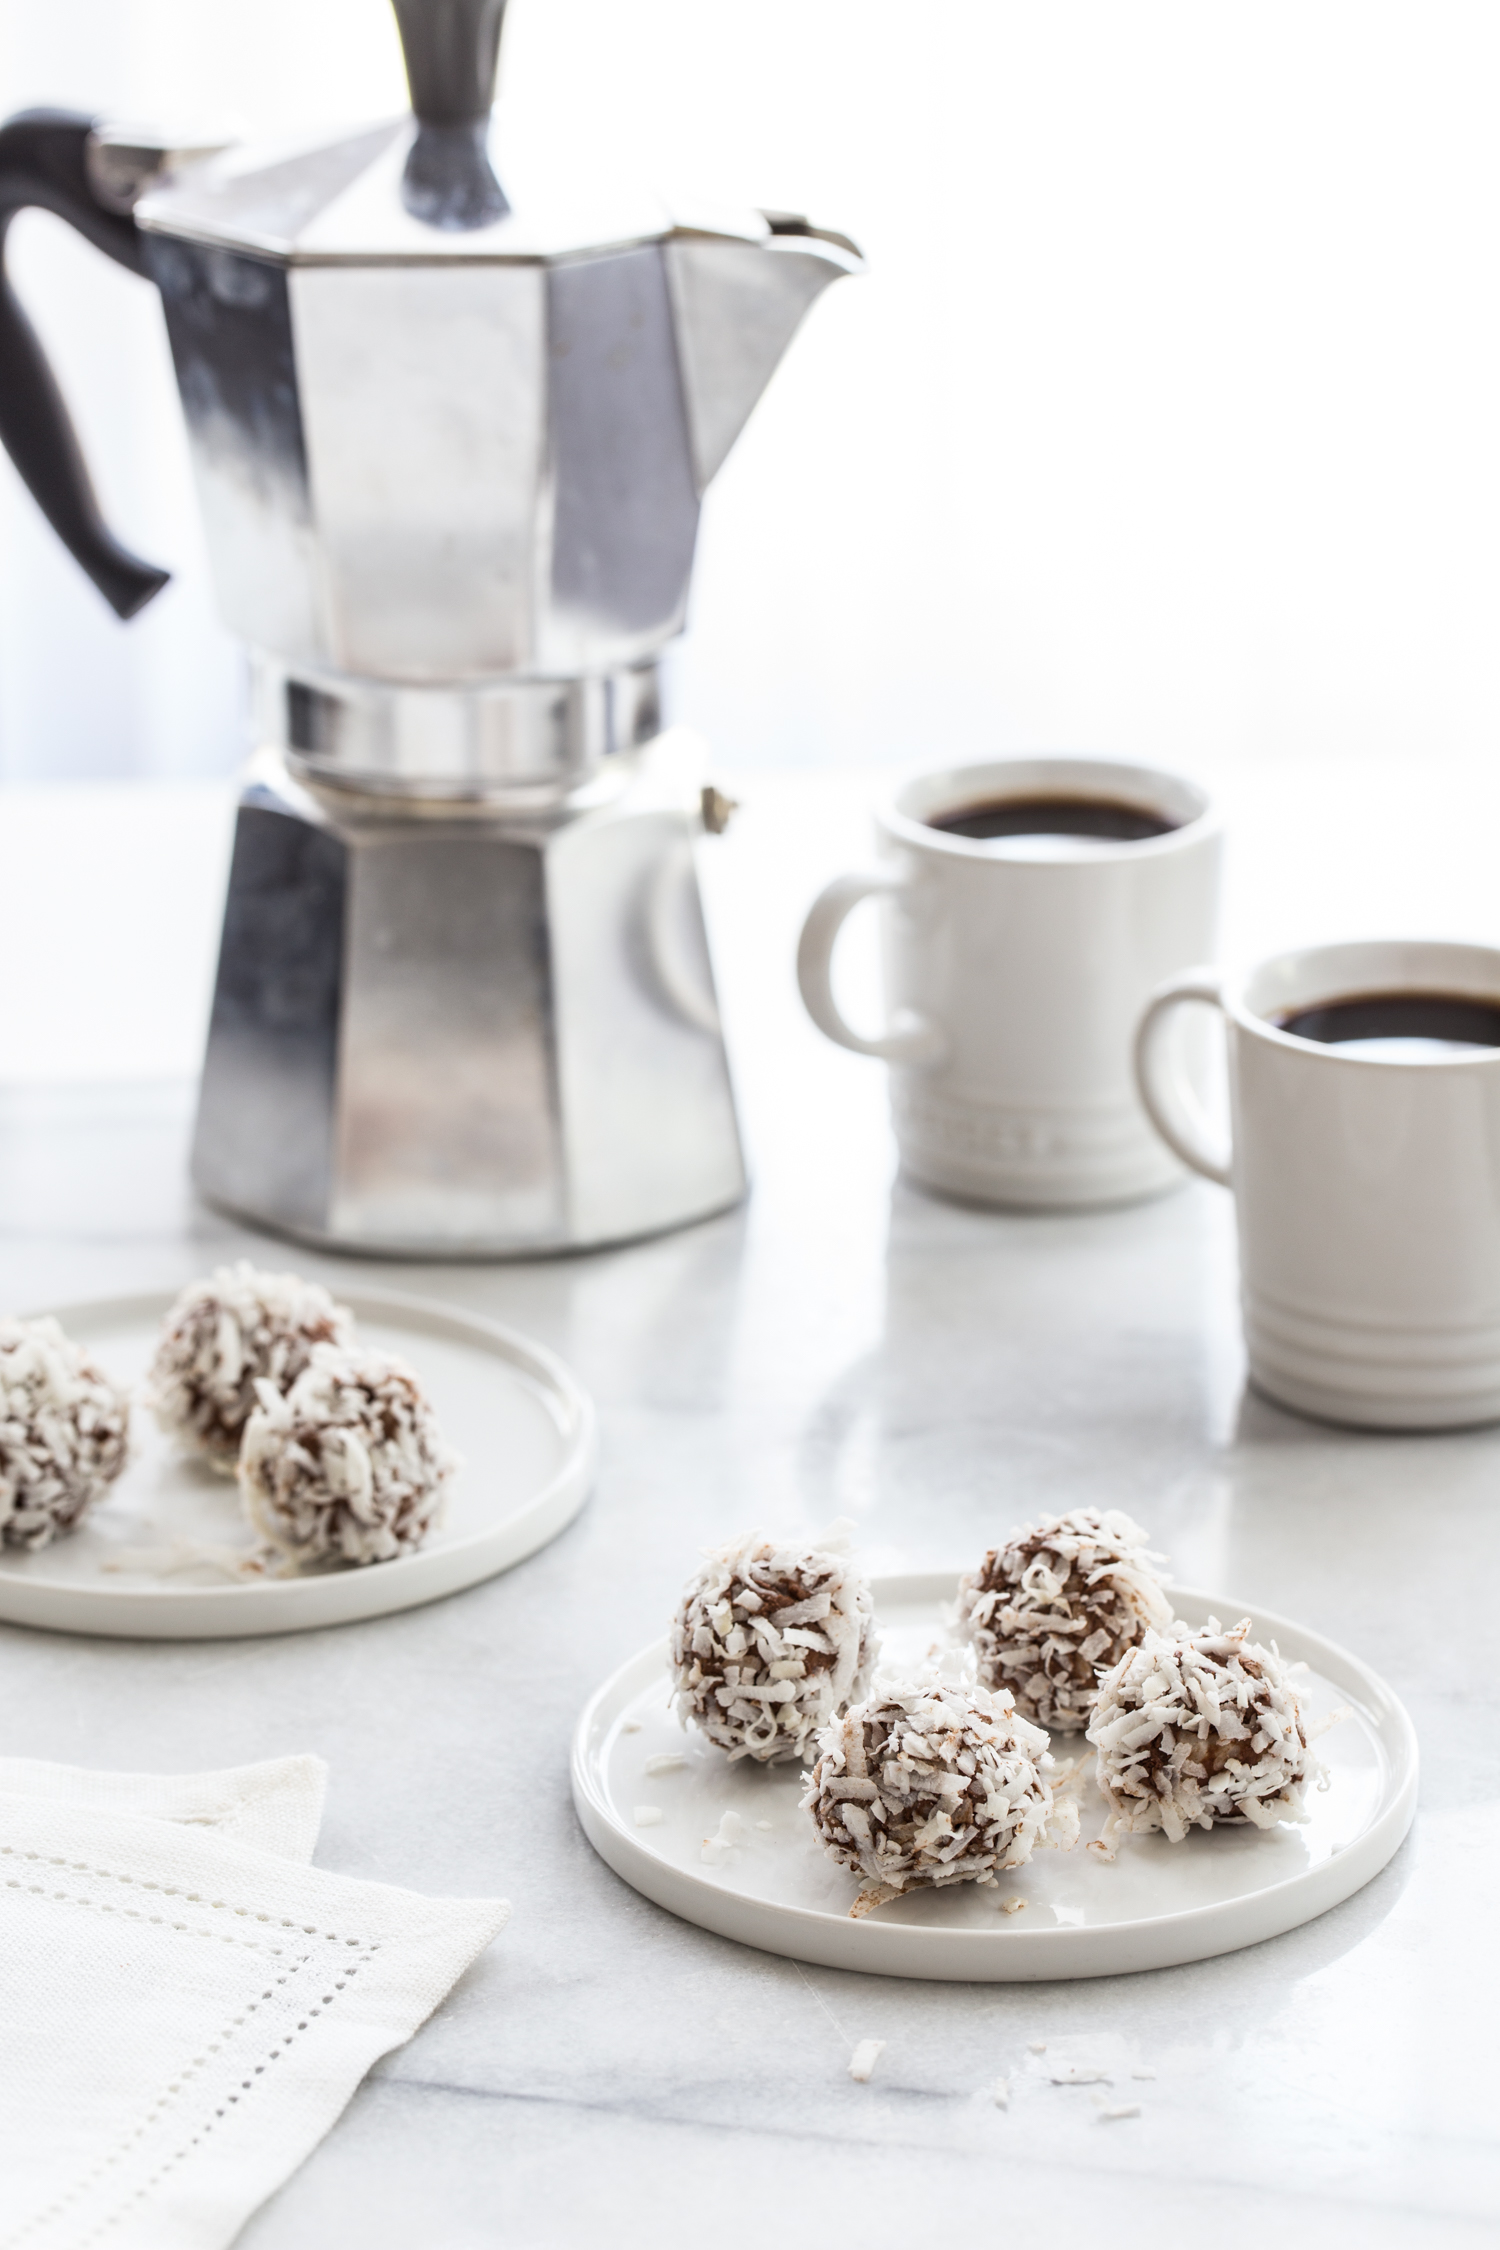 Low Carb Chocolate Coconut Truffles are a great low carb treat full of healthy fats and low on sugar